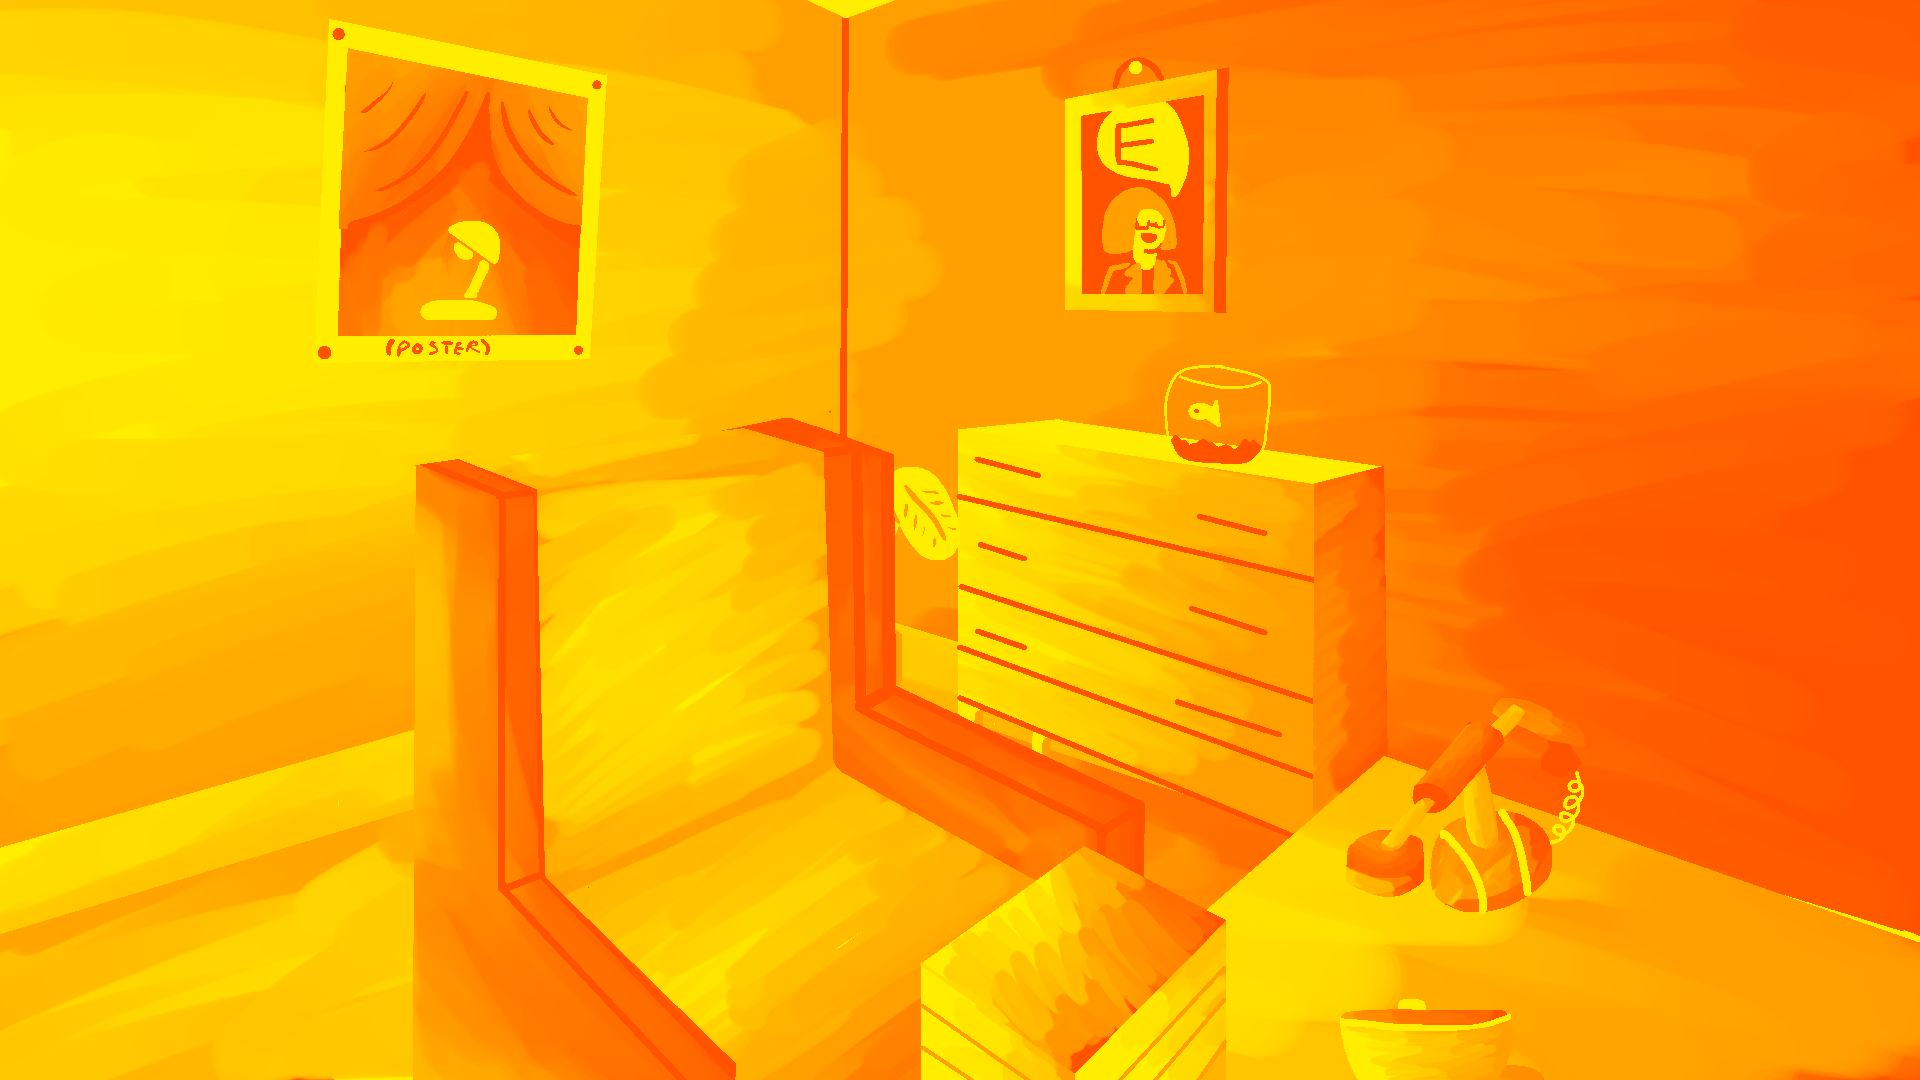 Illustration of an office in shades of orange.